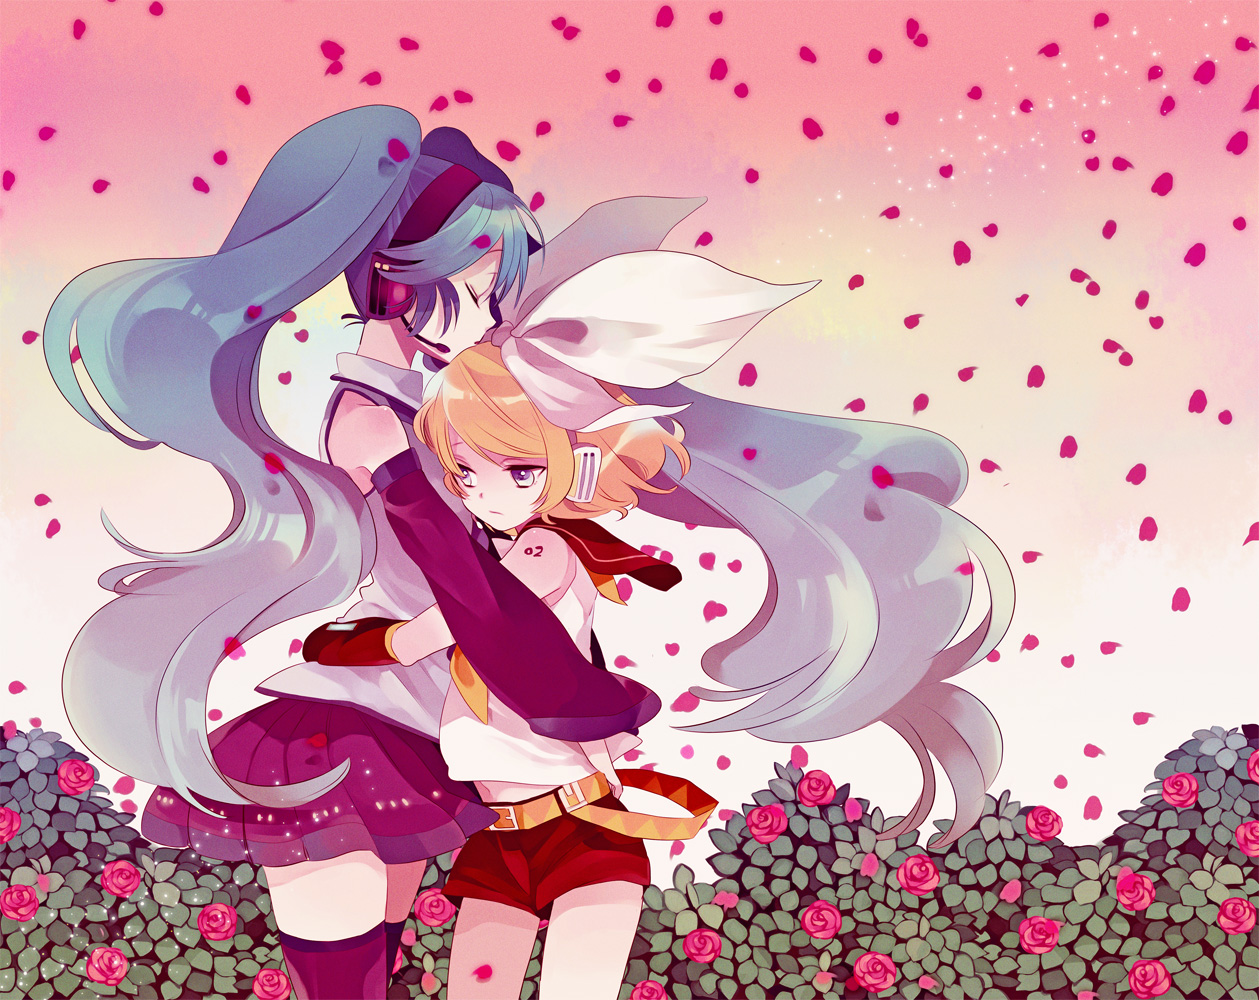 blonde_hair flowers green_hair hatsune_miku headphones kagamine_rin long_hair petals ribbons rose short_hair shorts skirt thighhighs twintails vocaloid